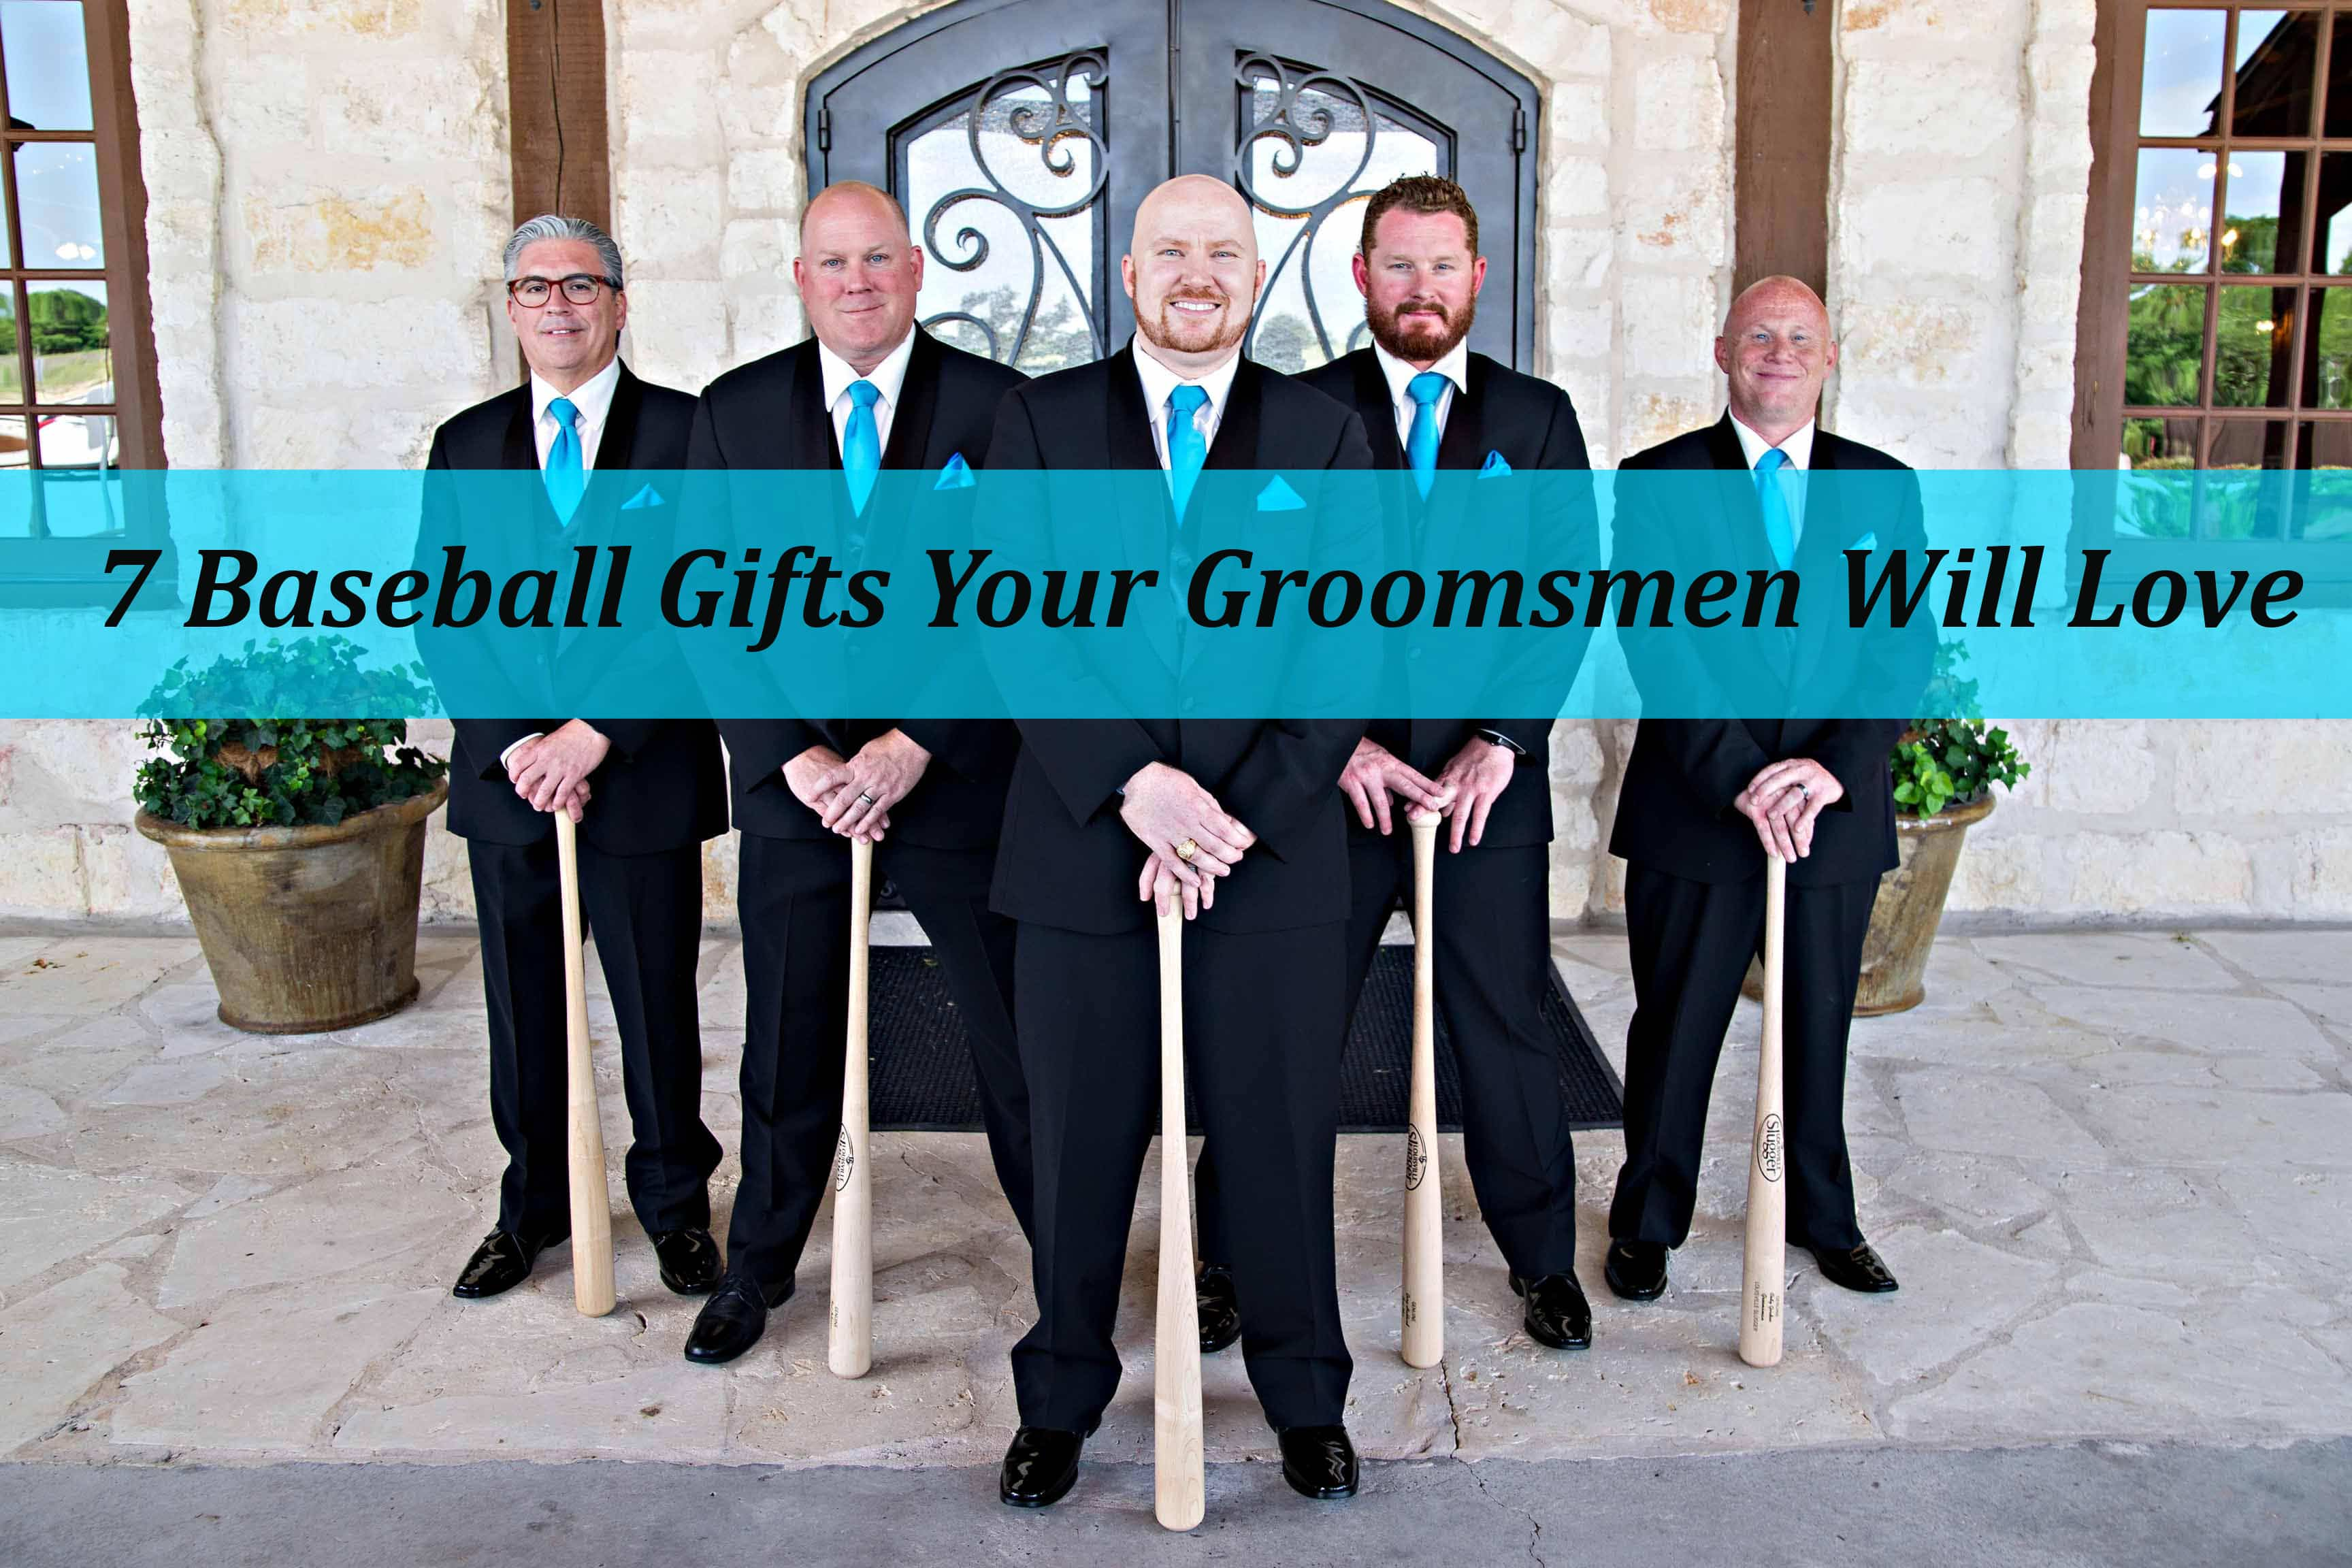 7 Baseball Gifts Your Groomsmen Will Love